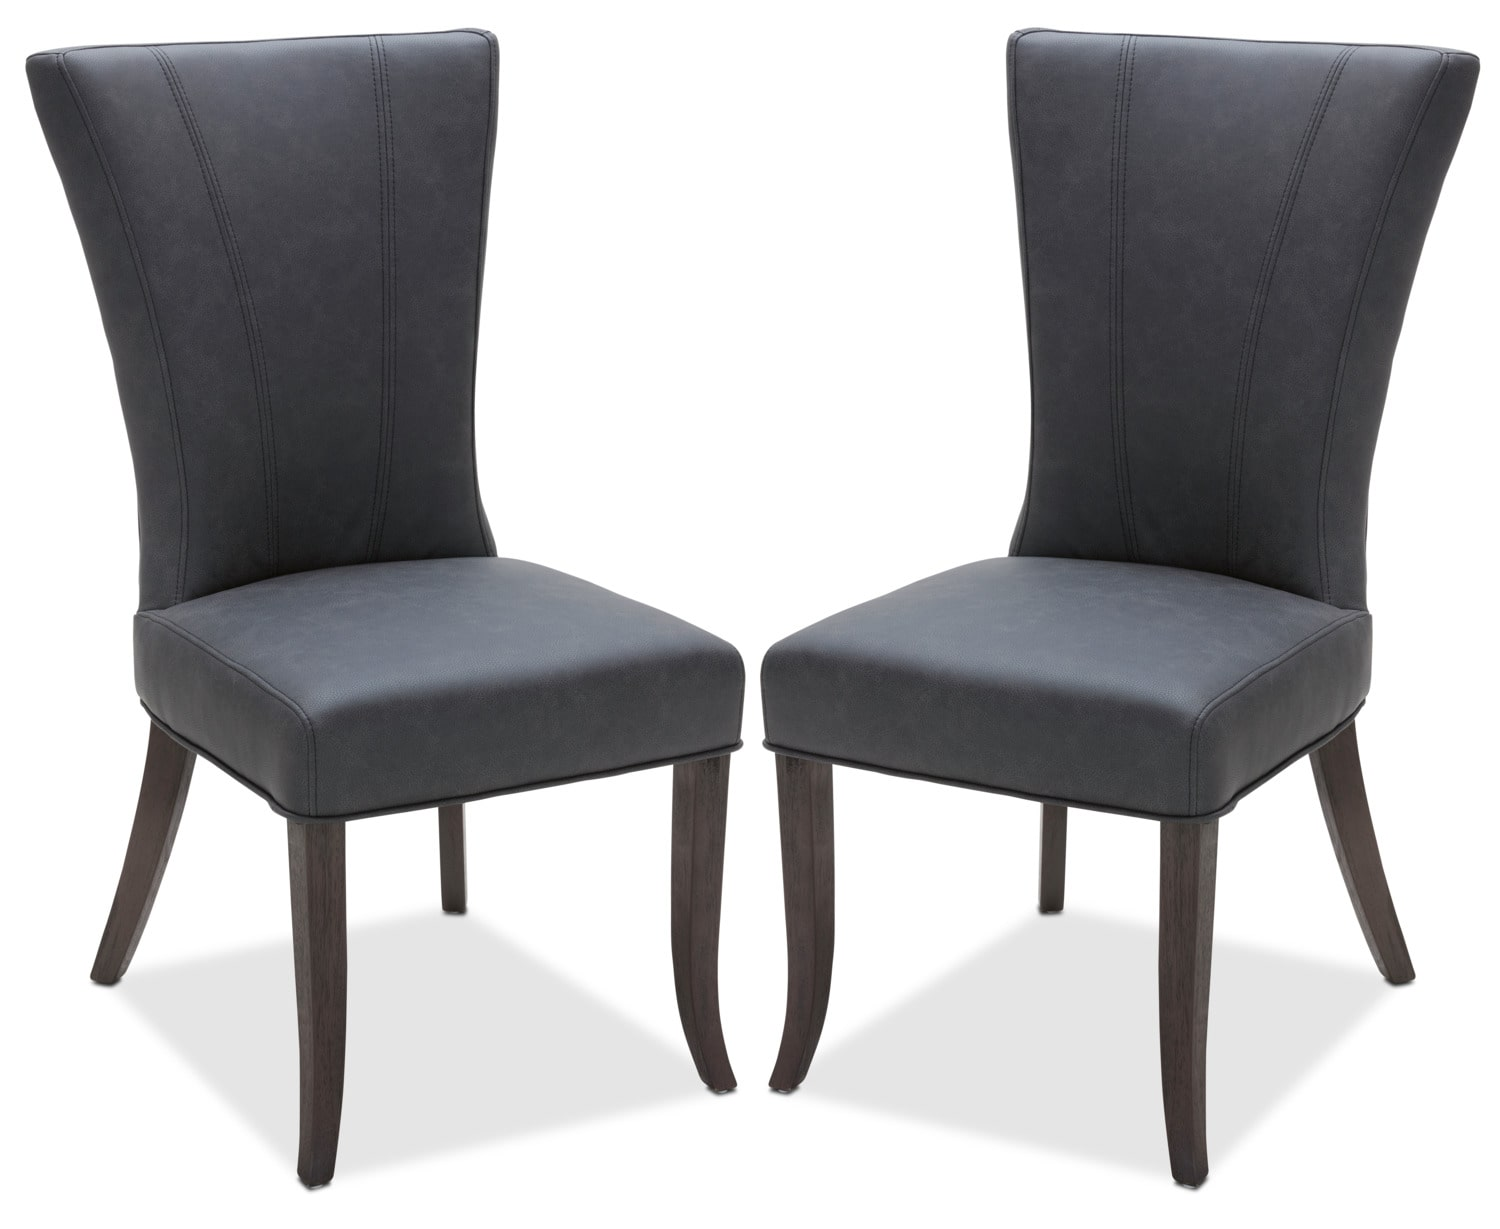 Bree Dining Chair, Set of 2 – Grey